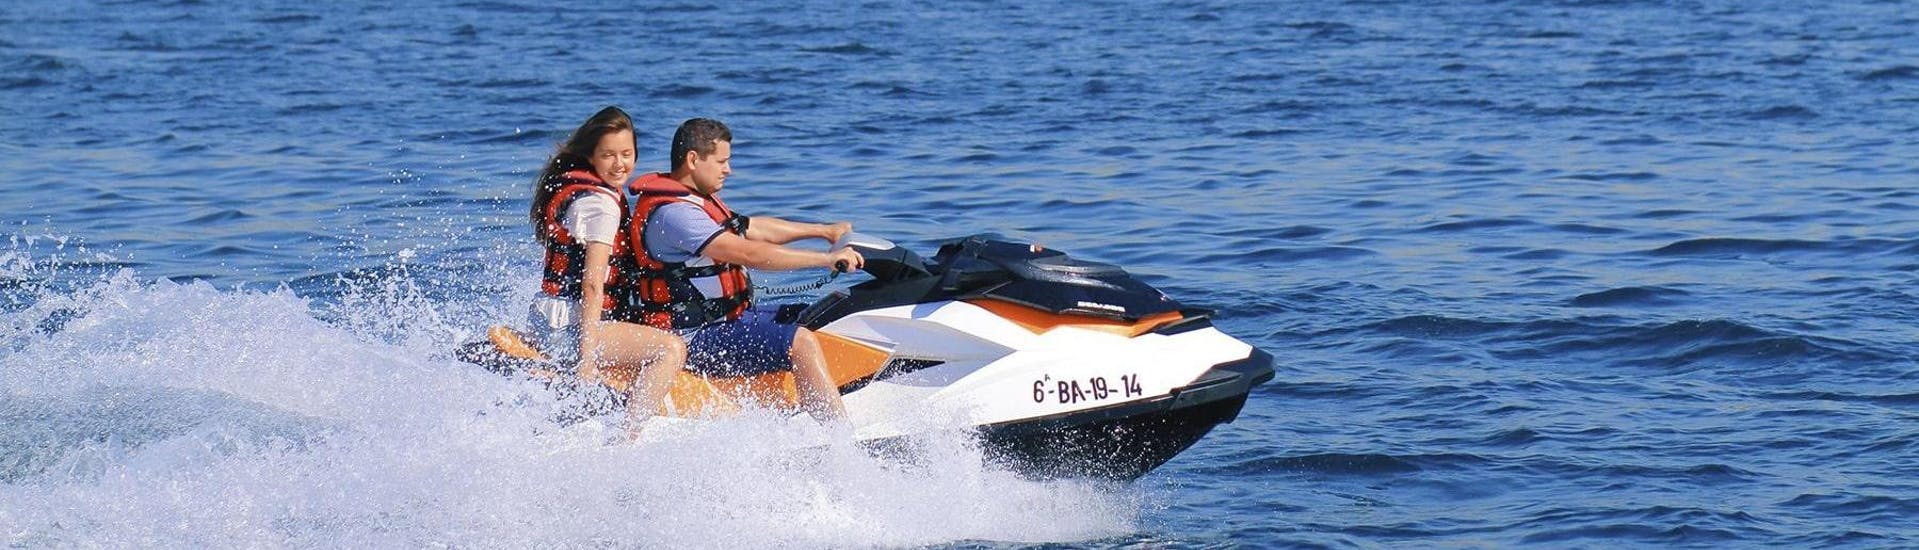 With Jet Ski Hire - Barcelona, two friends are riding fast along the Barcelona's coastline accompanied by an instructor from Five Star Barcelona.